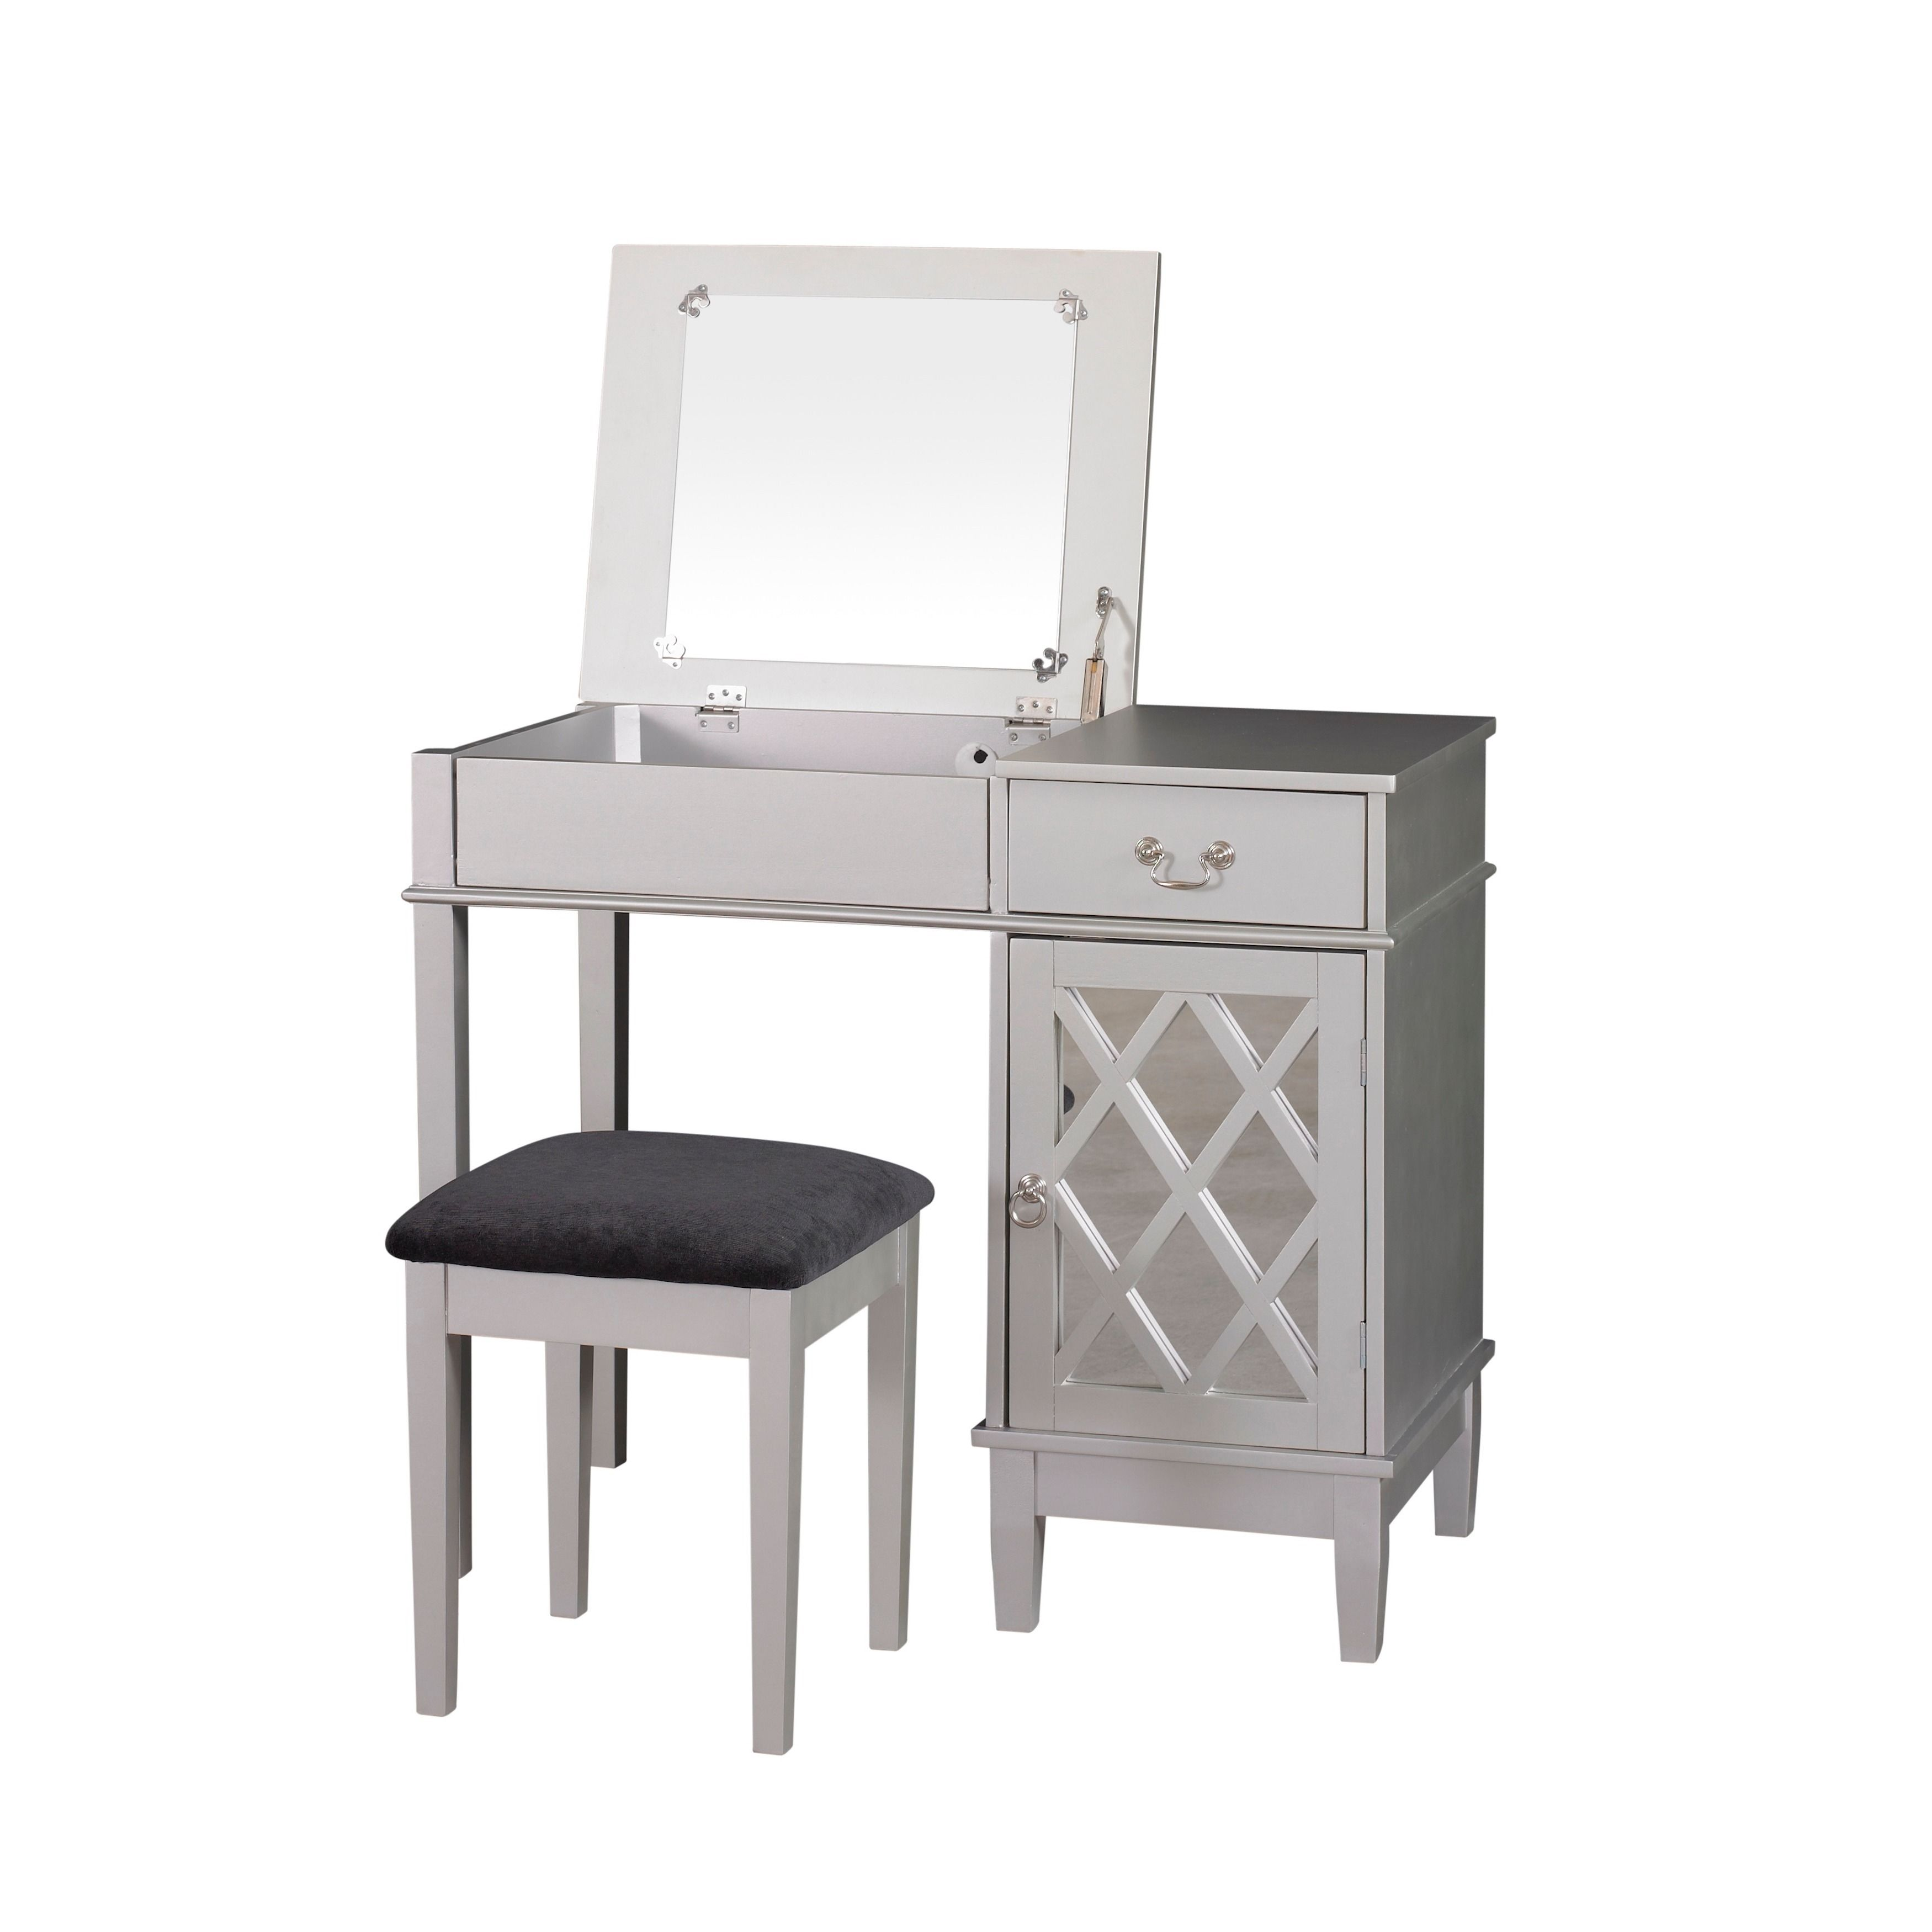 Vanity Home Goods: Free Shipping On Orders Over $45 At Overstock.com   Your